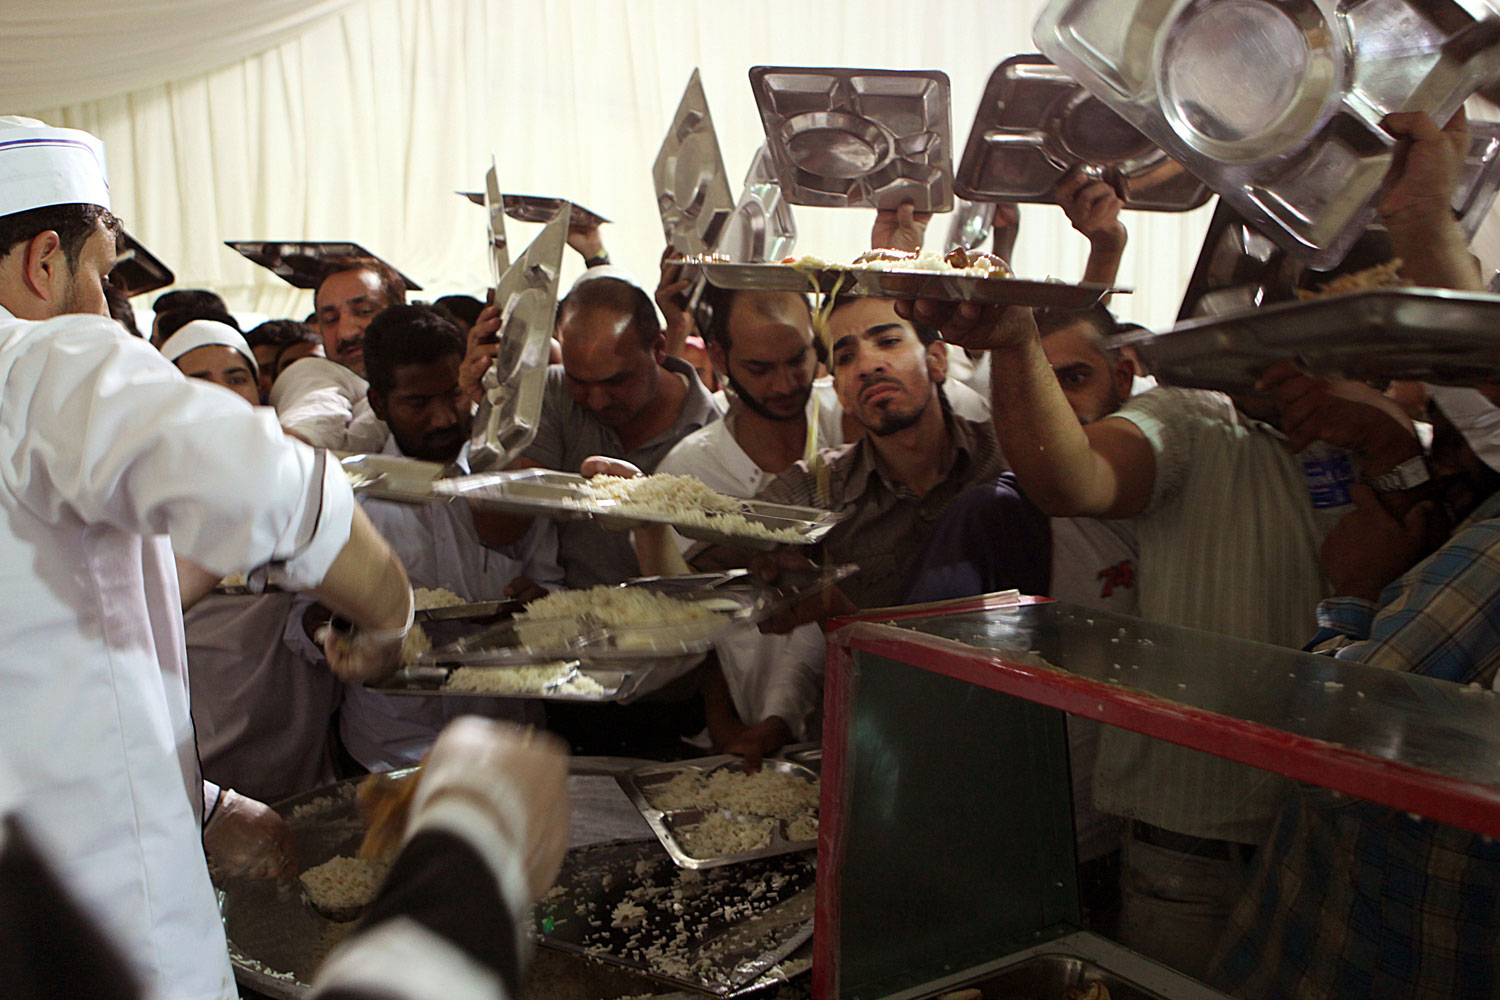 August 2, 2011. Asian and Arabs workers crowd a food distribution counter at a local mosque, as they ready to break their fast during Ramadan in Riyadh.